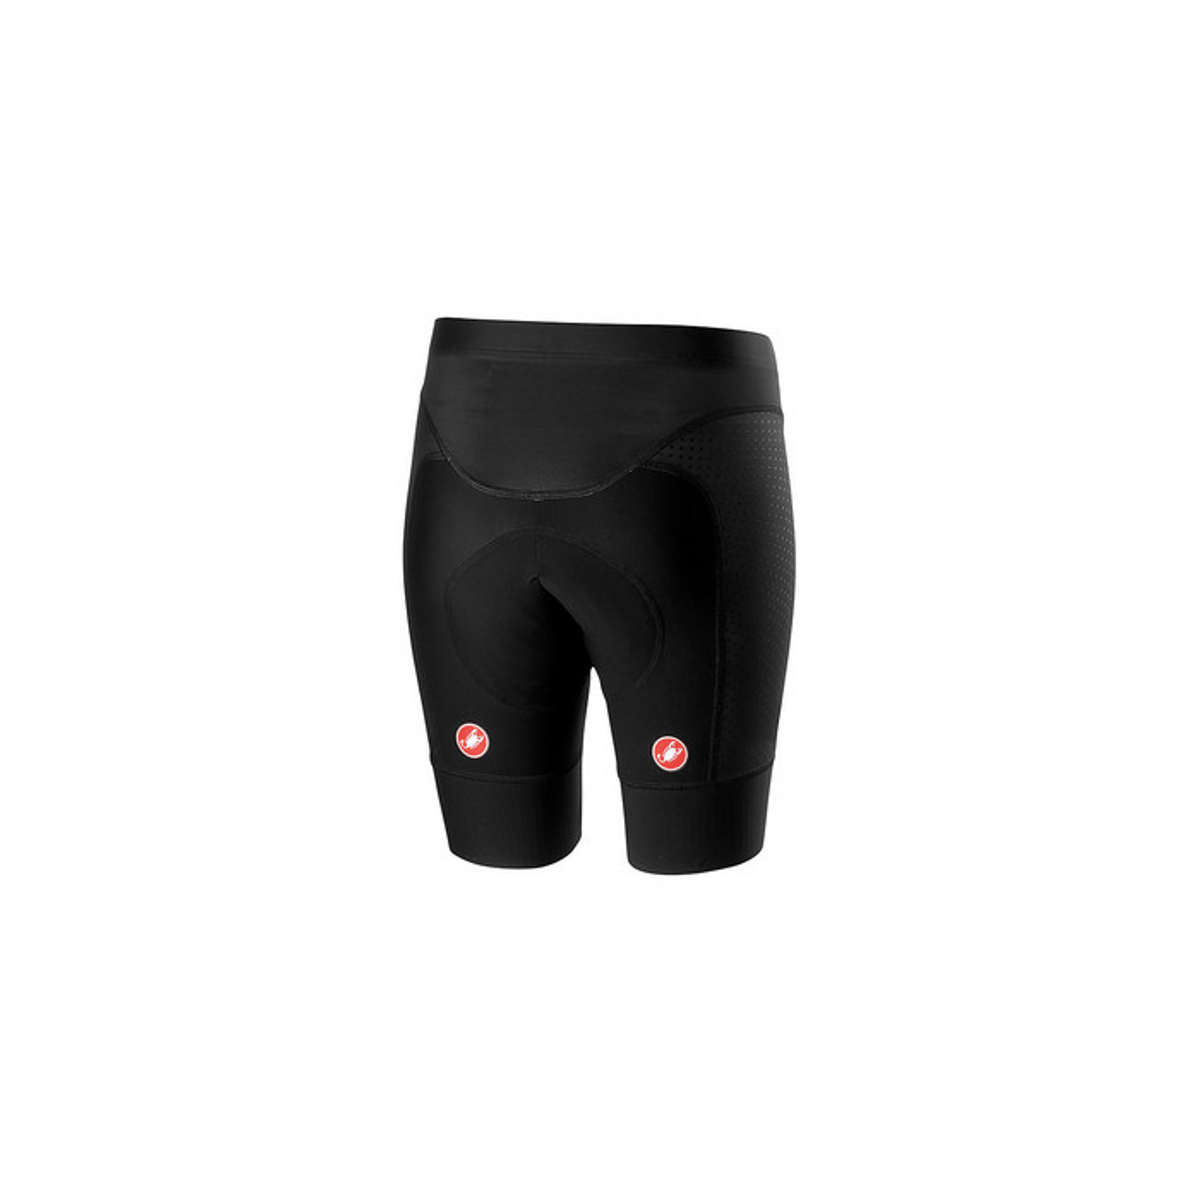 Castelli Free Aero Race 4 Women's Short - Black